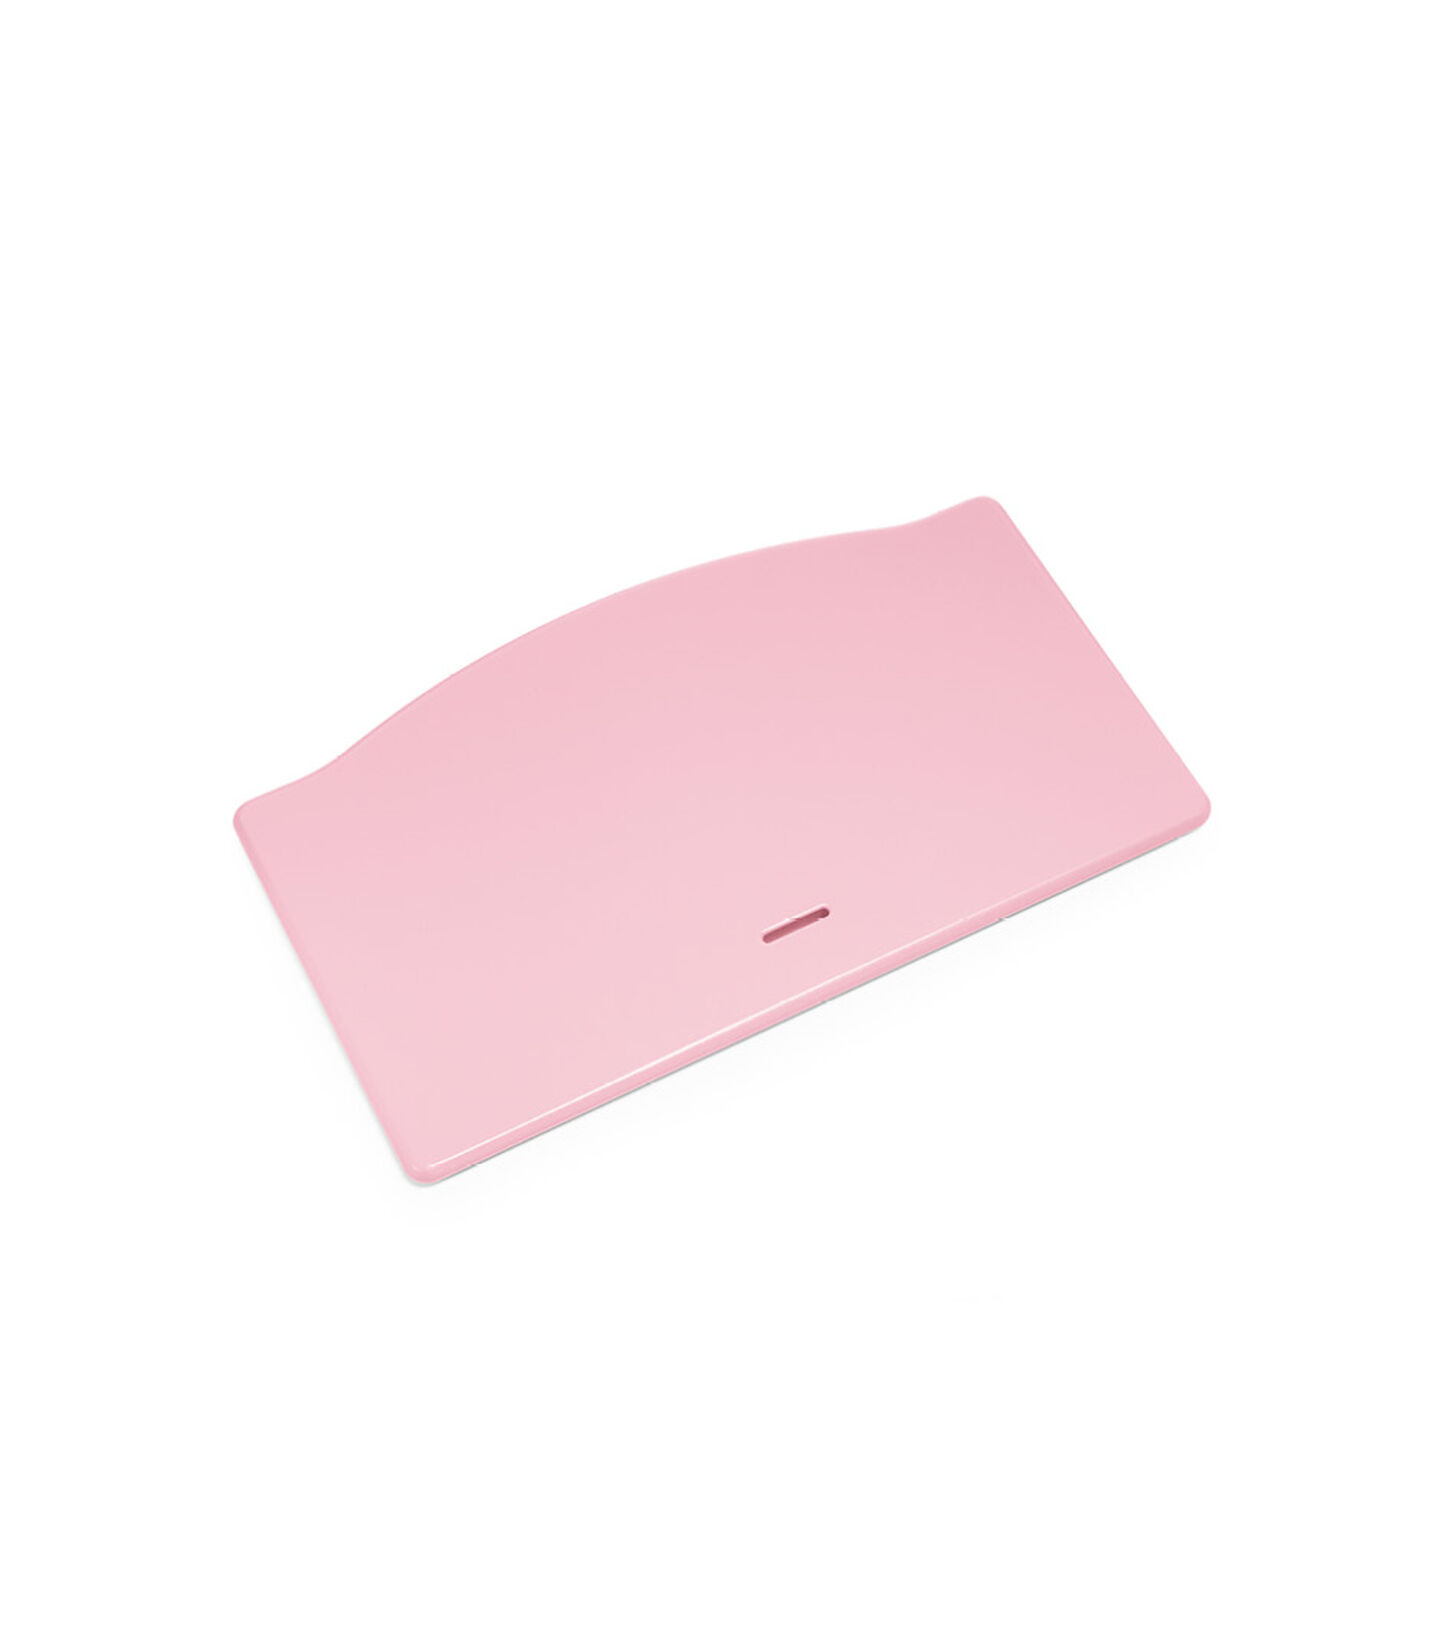 Tripp Trapp® Seatplate Soft Pink, Rosa Soft, mainview view 2